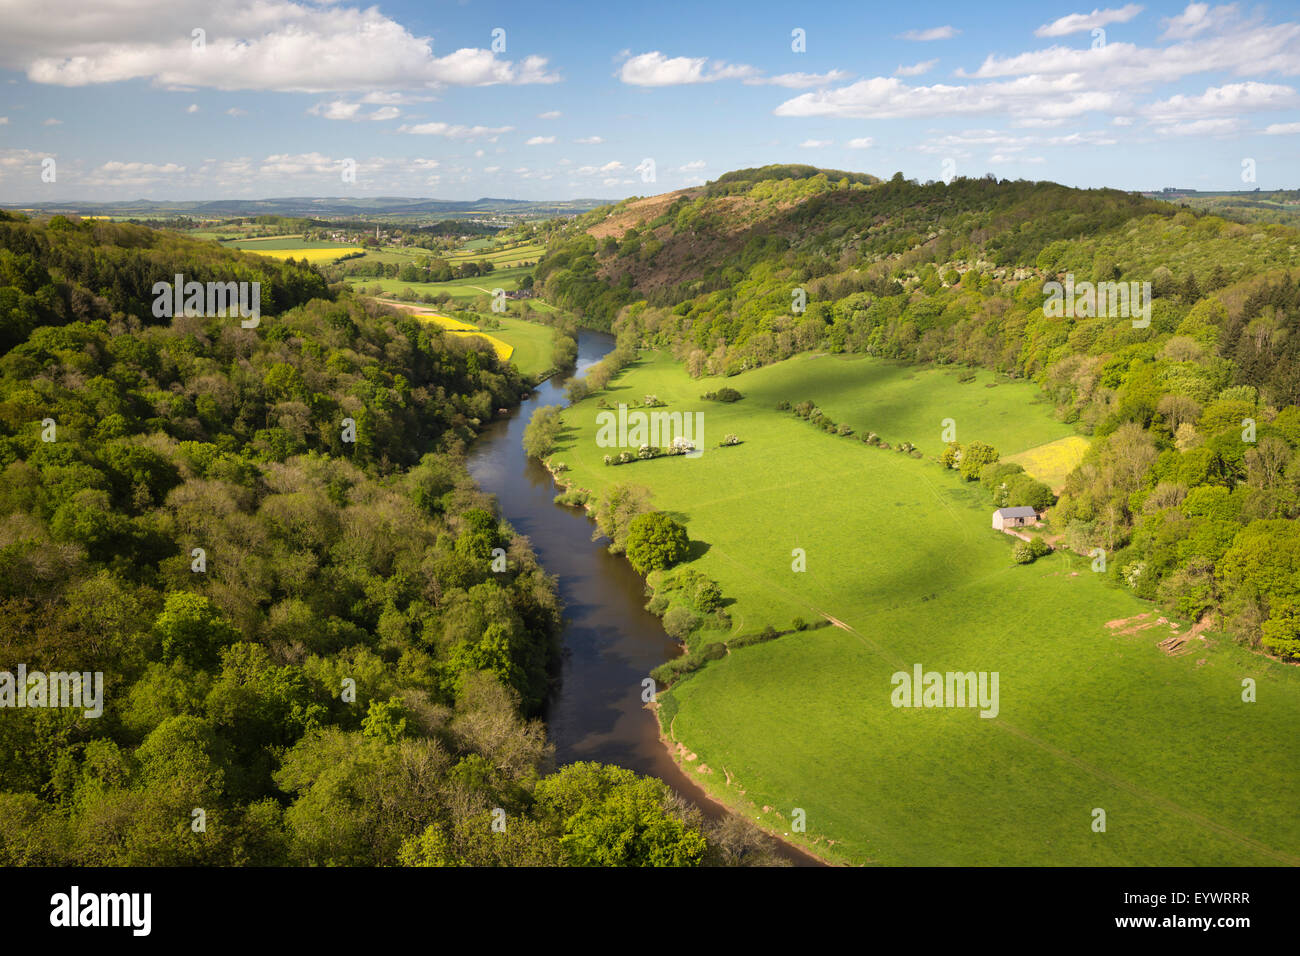 View over Wye Valley from Symonds Yat Rock, Symonds Yat, Forest of Dean, Herefordshire, England, United Kingdom, - Stock Image